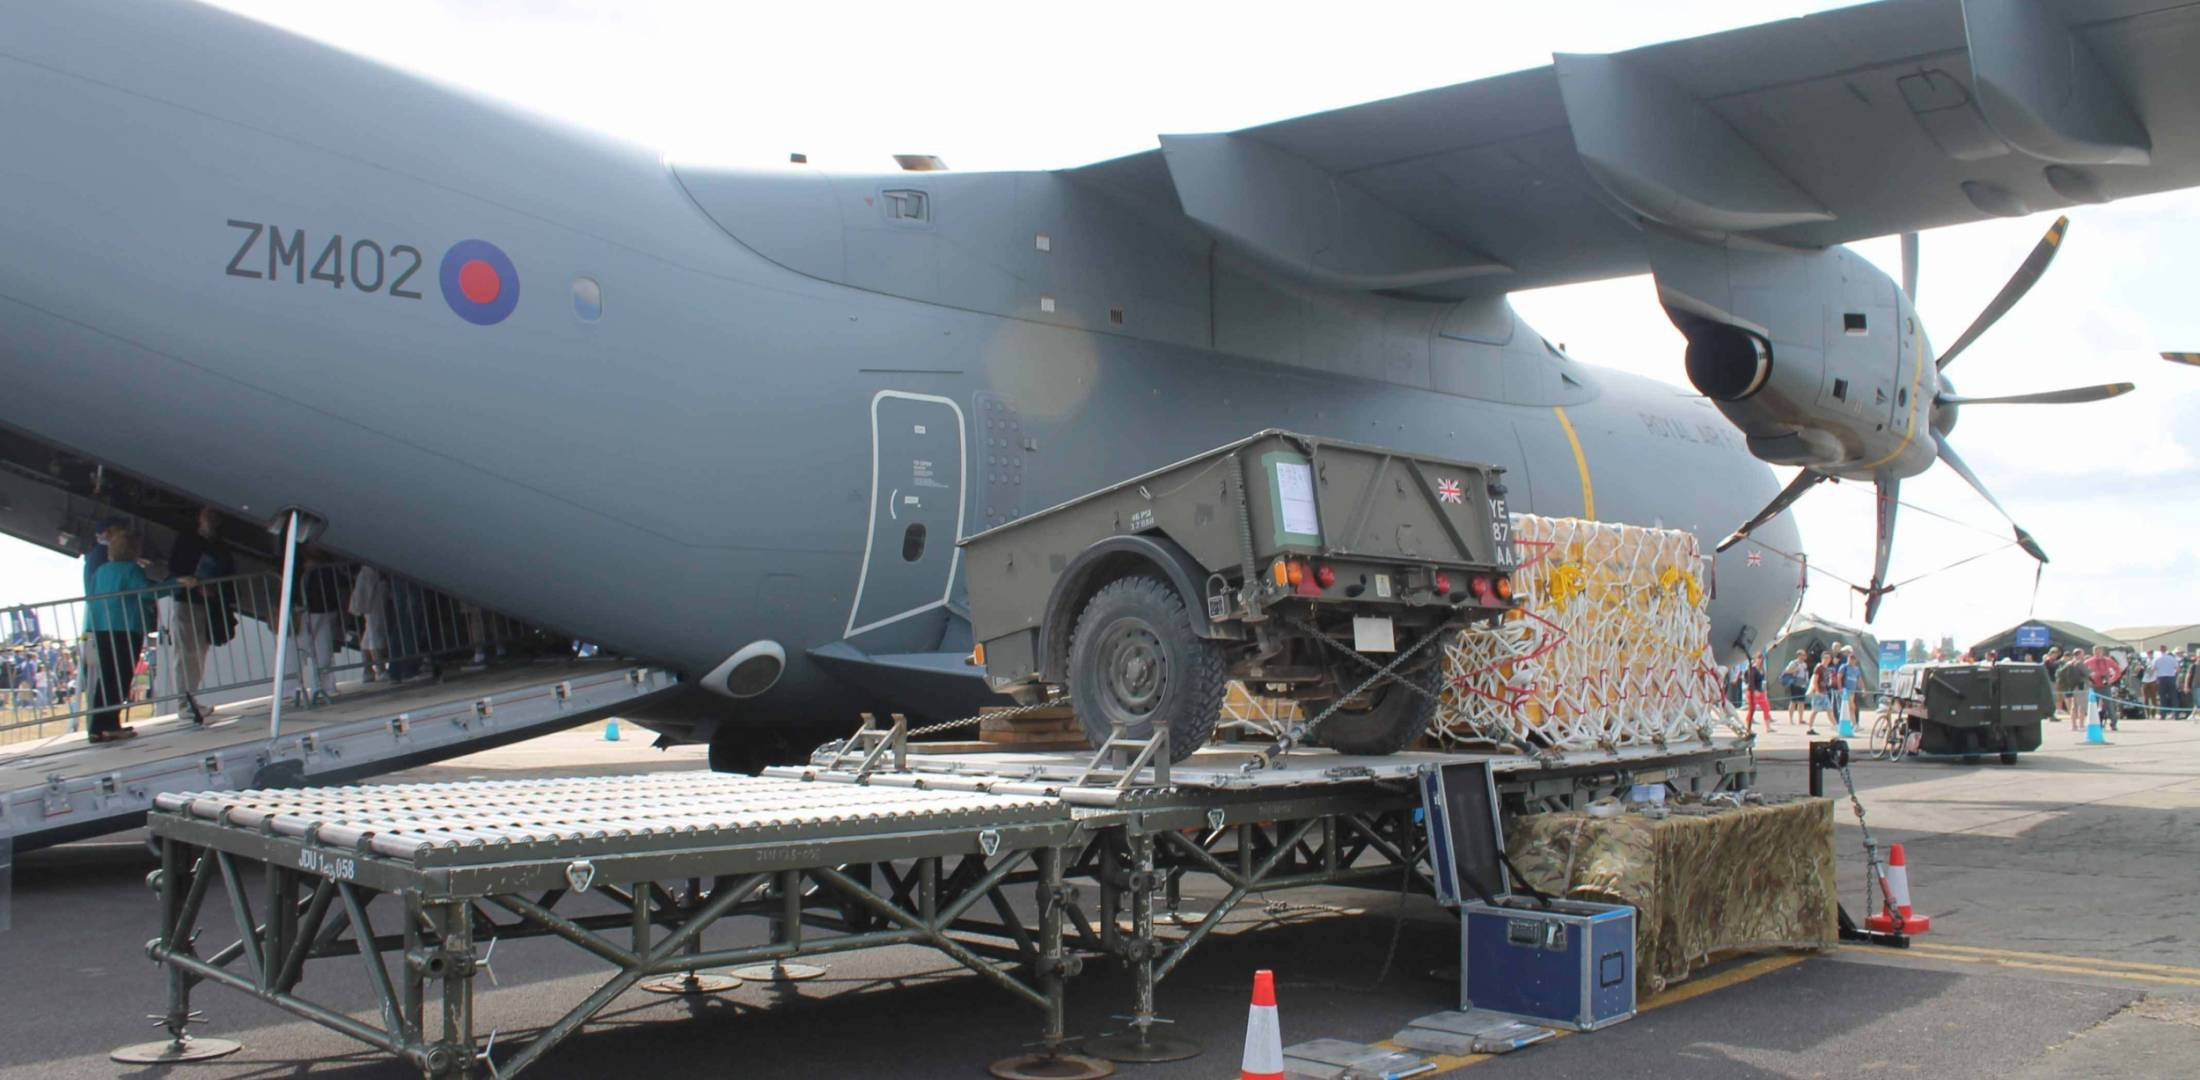 Third A400M delivered to UK RAF is on display.